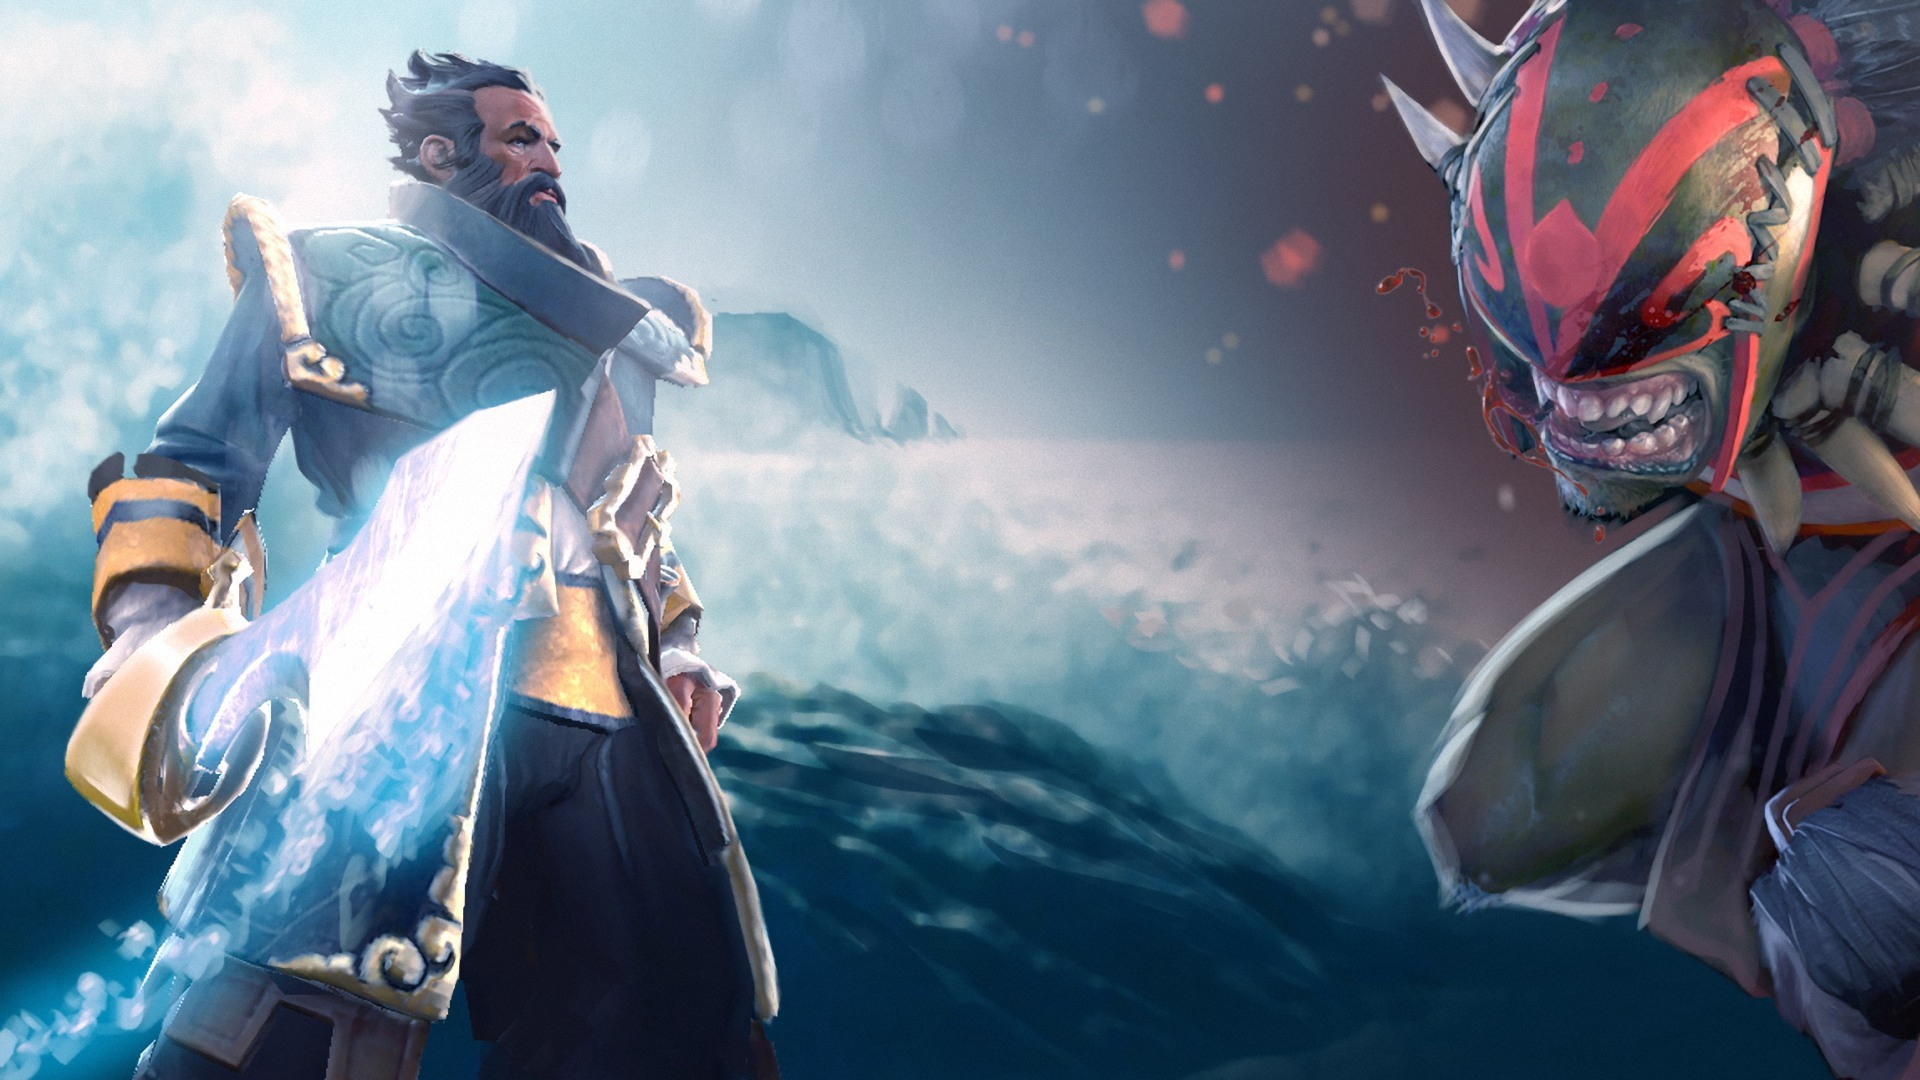 DOTA 2 coco 1920x1080 Wallpapers 1920x1080 Wallpapers Pictures 1920x1080